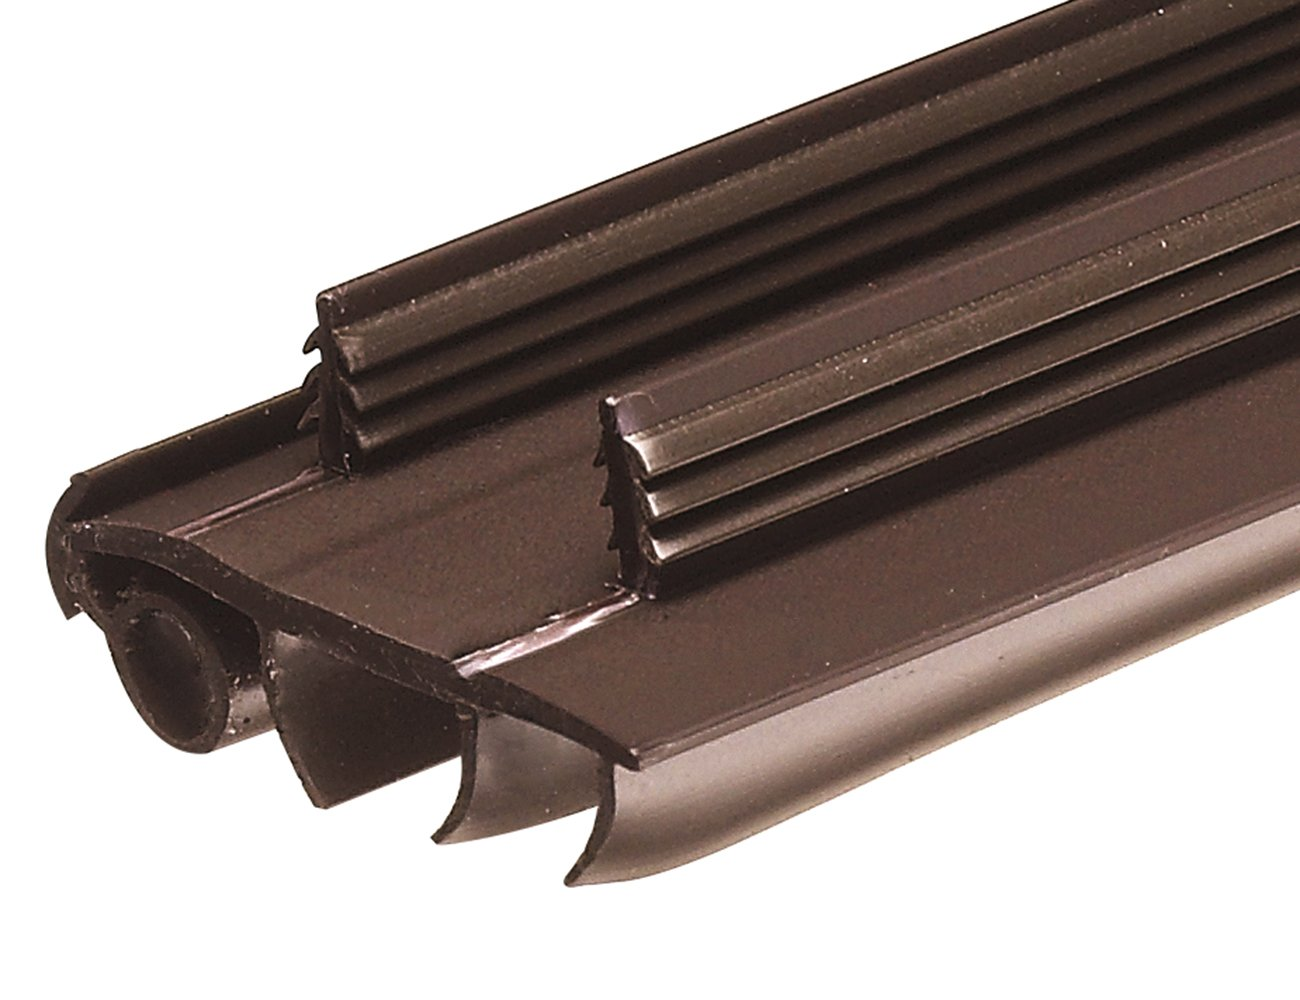 Frost King UDS36 1-3/4' x 36' Frost King UDS36 Snap-In Vinyl Door Bottoms for Metal Doors, Brown